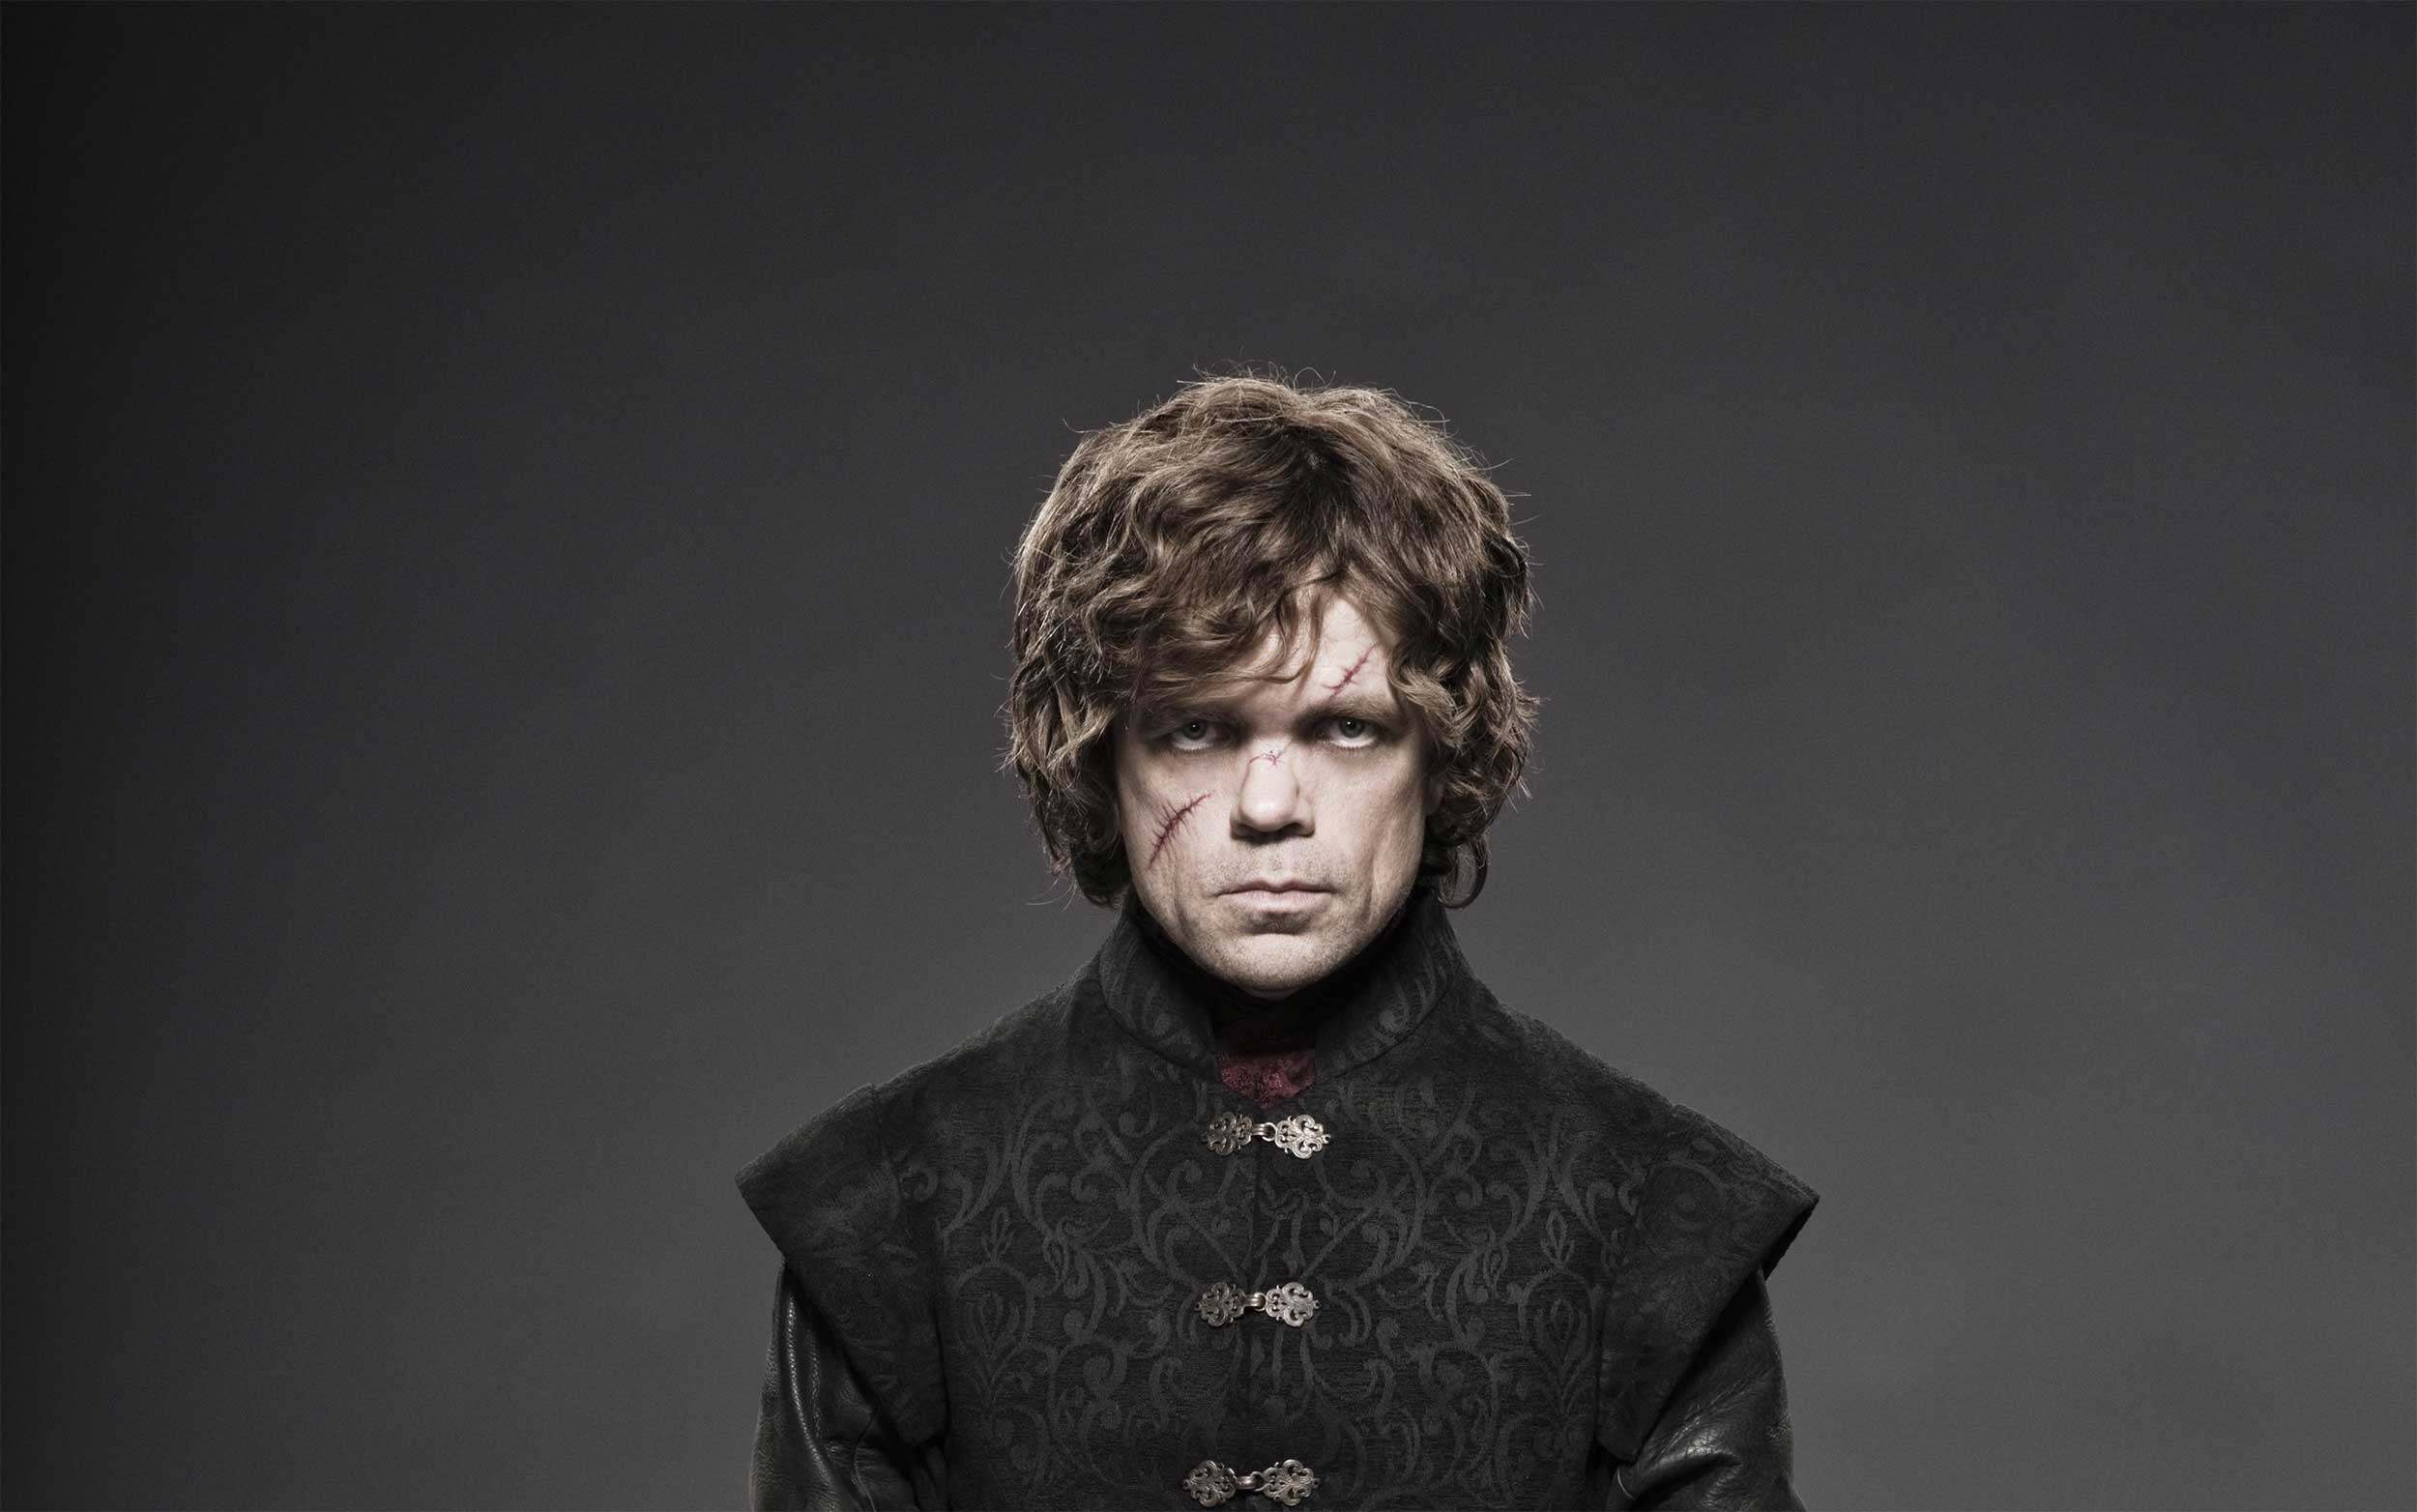 Tyrion Lannister Quotes Hd Wallpaper Game Of Thrones Saison 7 Tyrion V 233 Ritable H 233 Ros Et Roi